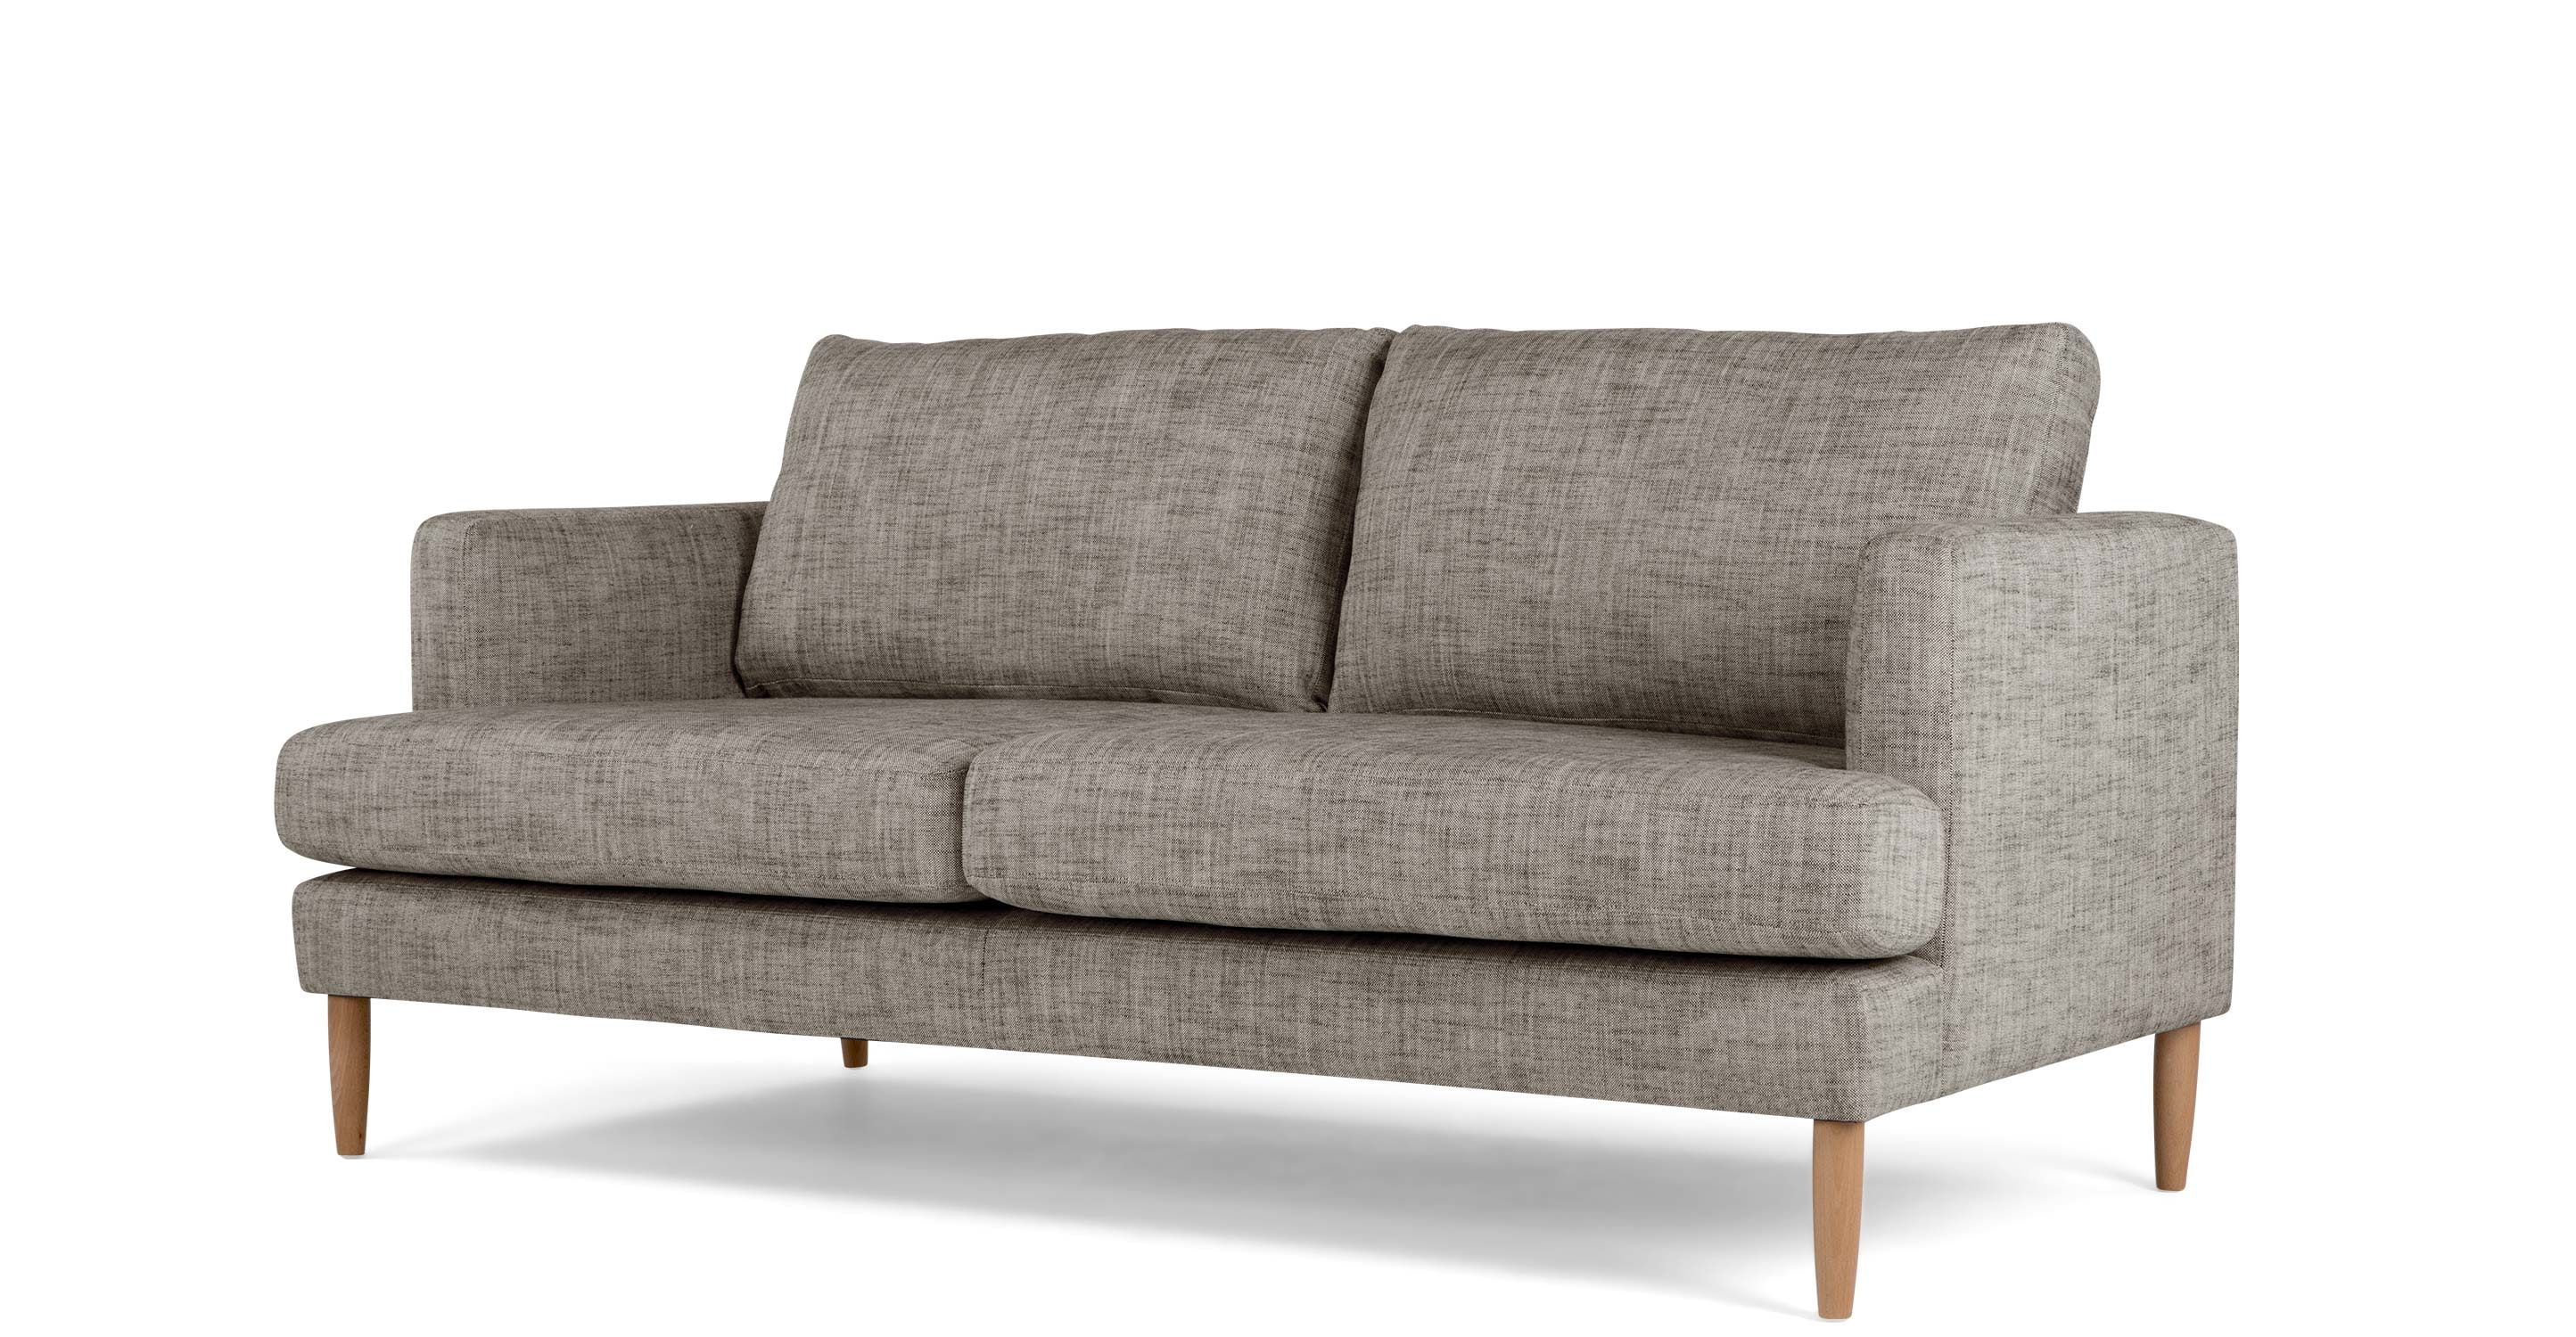 Schicke Sofas Kotka 2 Sitzer Sofa Vintage Braun Sitting Rooms Sunroom And Room